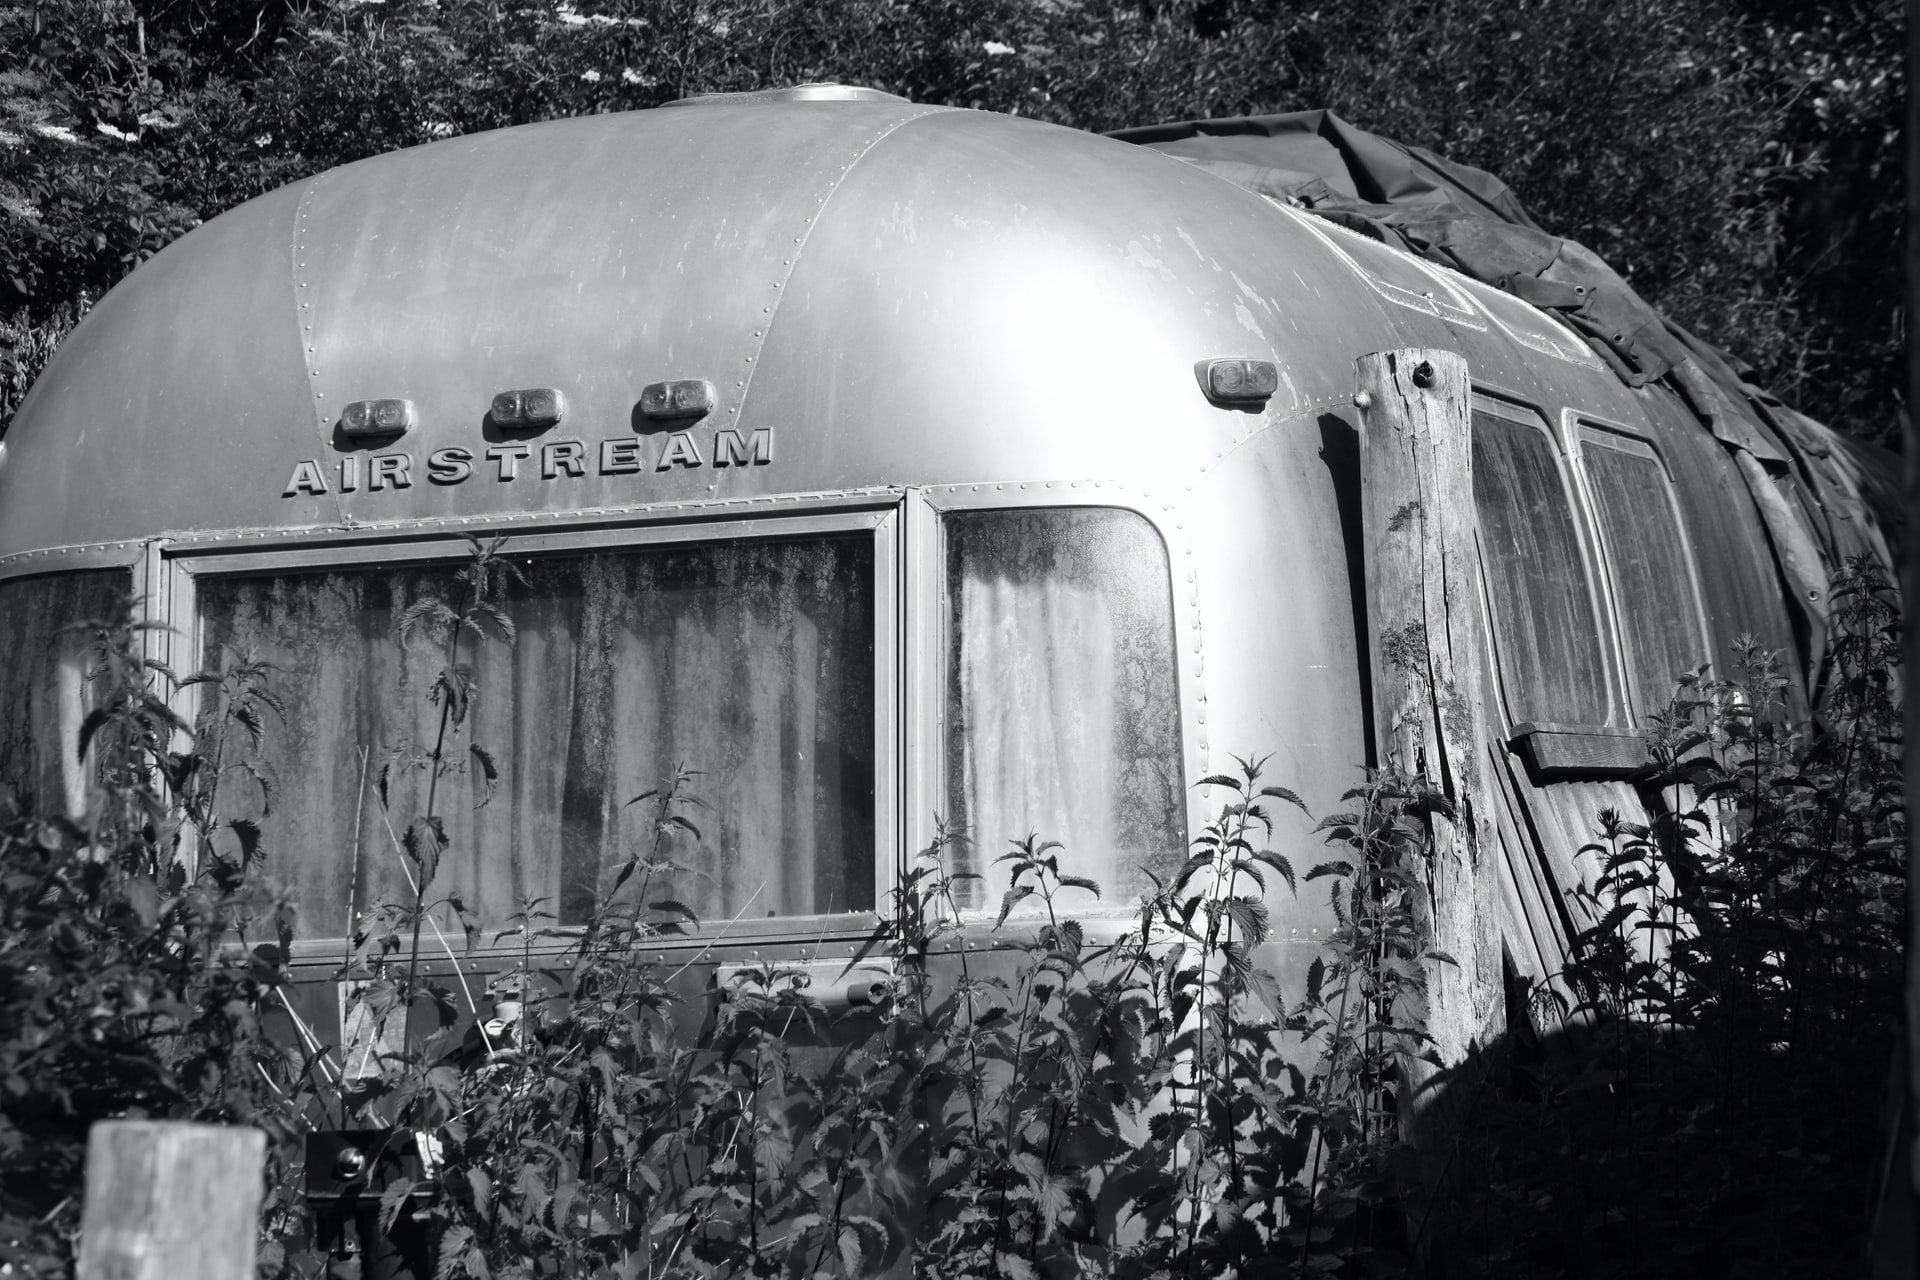 Classic RVs: The History of the Airstream